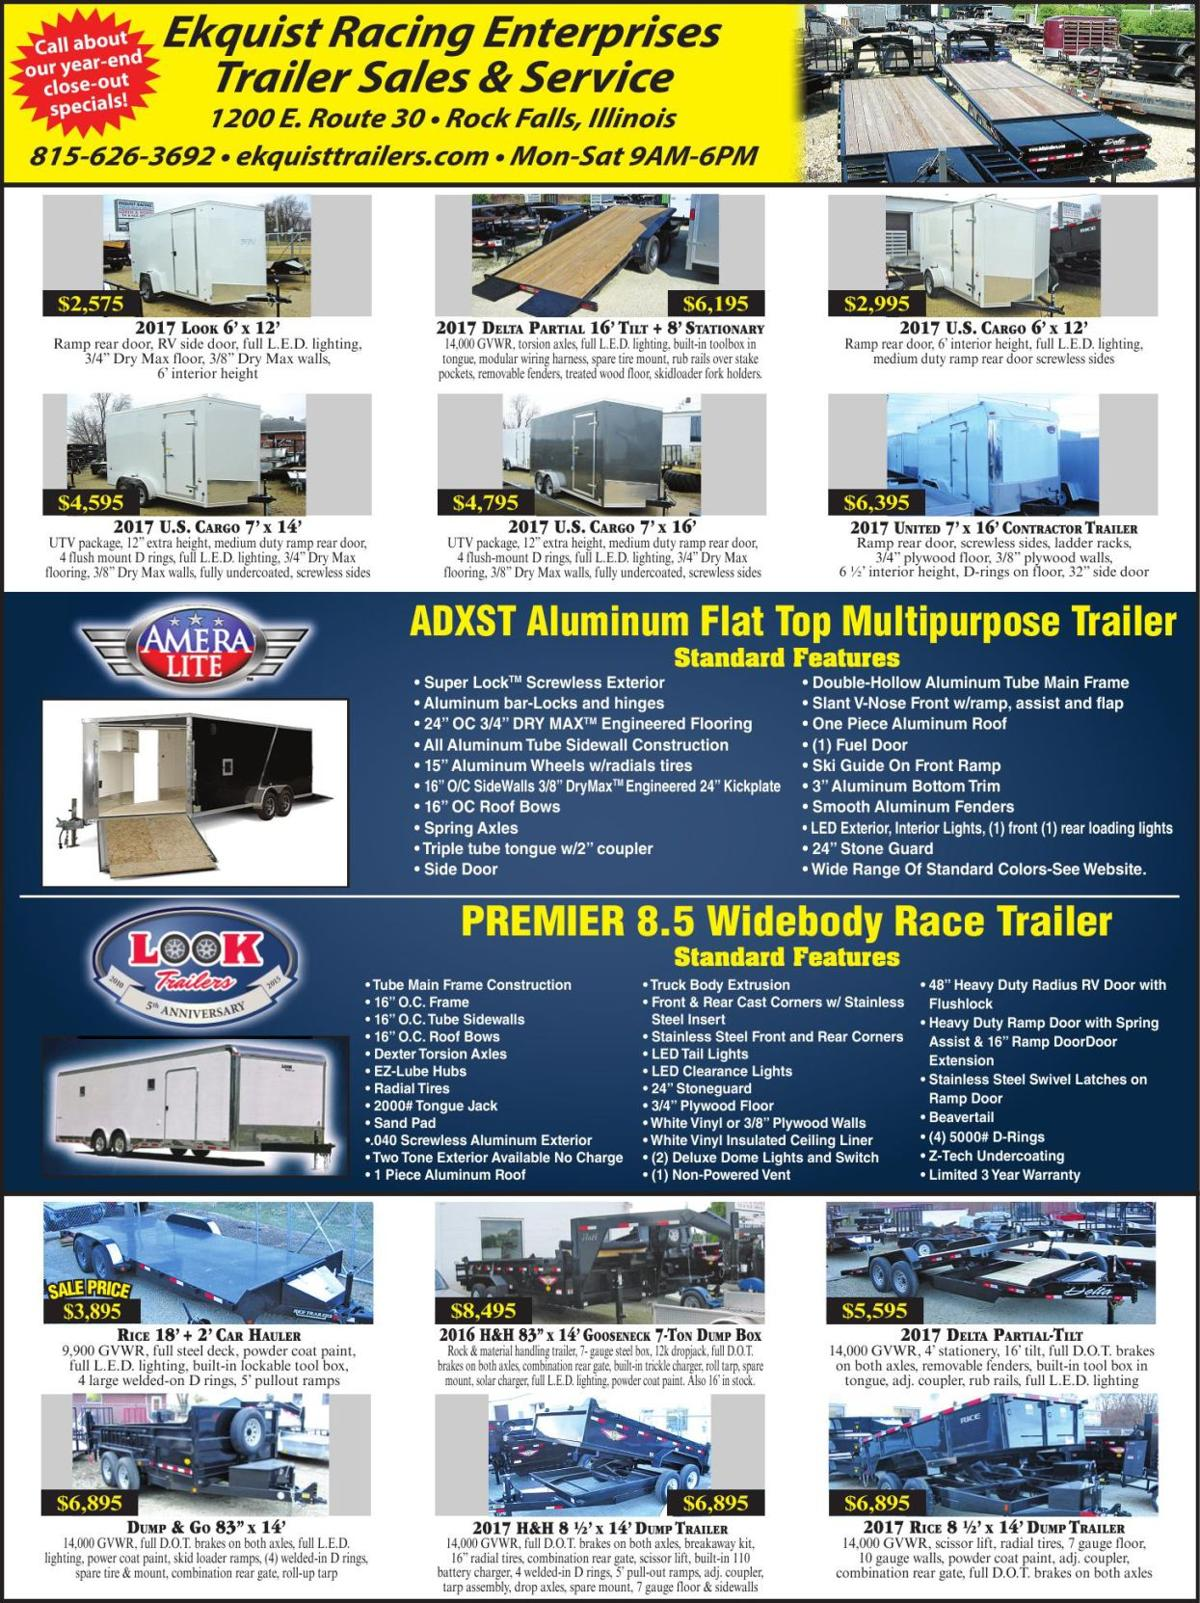 20703201pdf Ad Vault Trailer Wiring Battery Charger Download Pdf